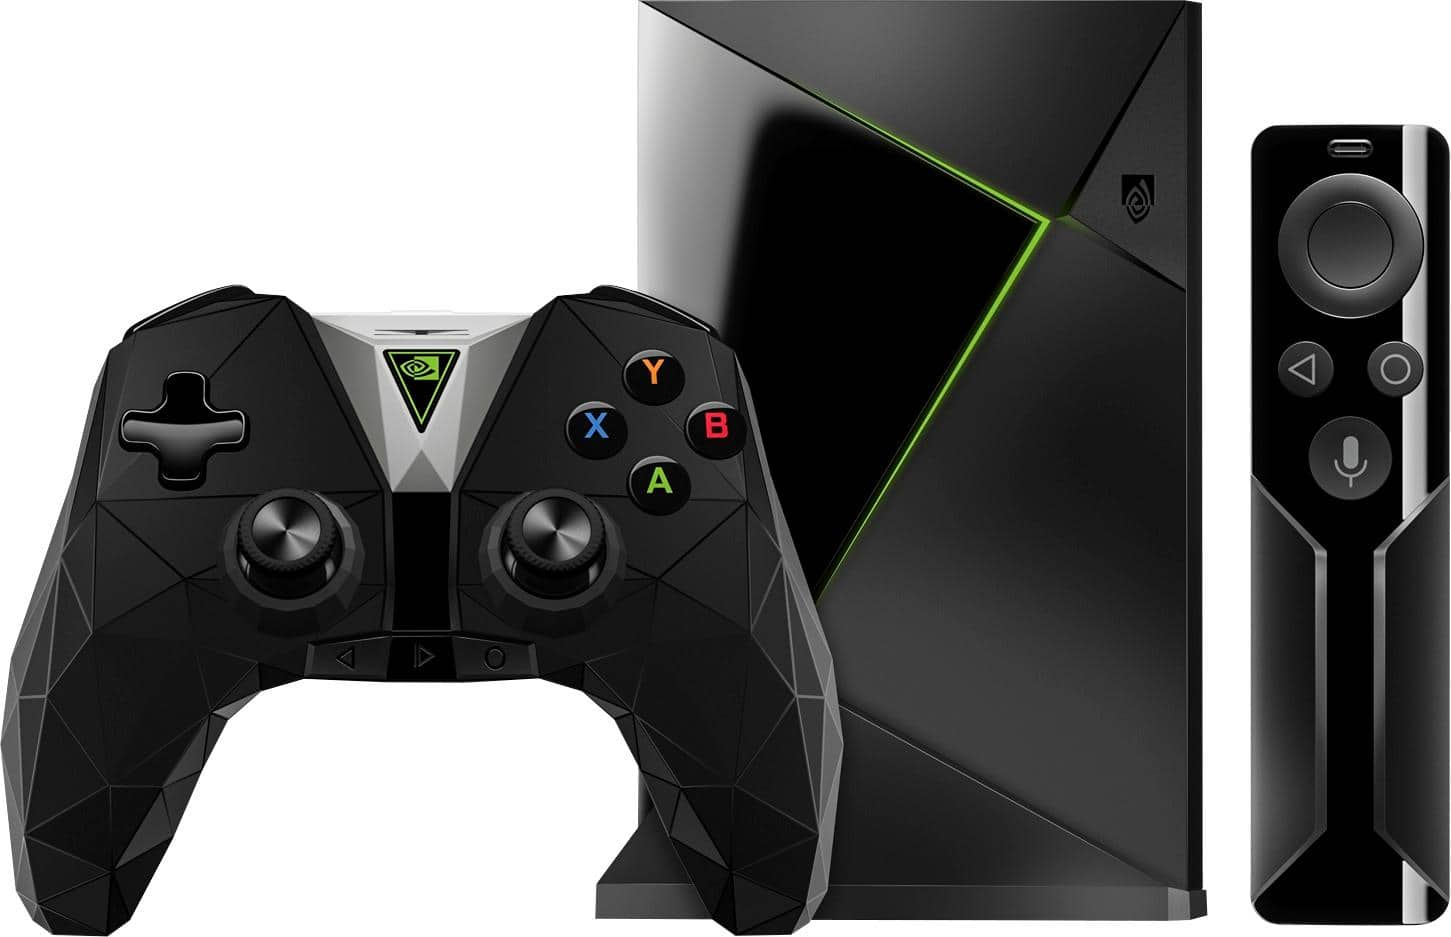 NVIDIA - SHIELD TV Gaming Edition - 4K HDR Streaming Media Player with Google Assistant and Controller Back in Stock @ Best Buy $189.99 on Clearance